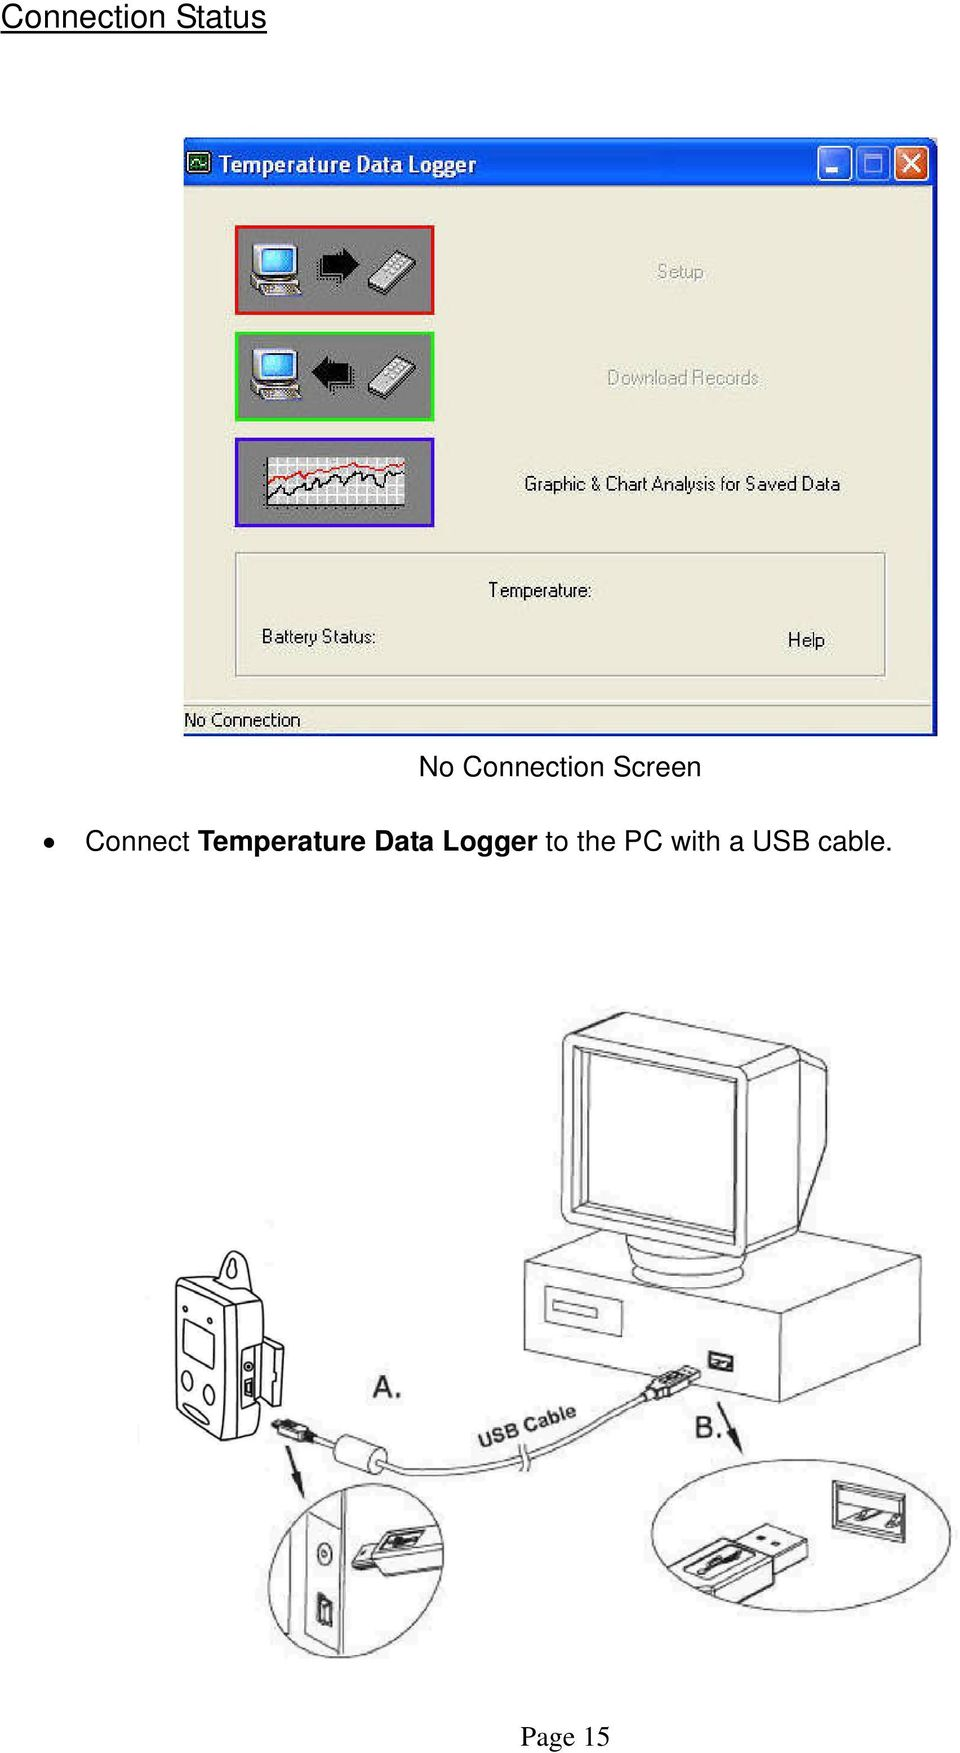 Temperature Data Logger to